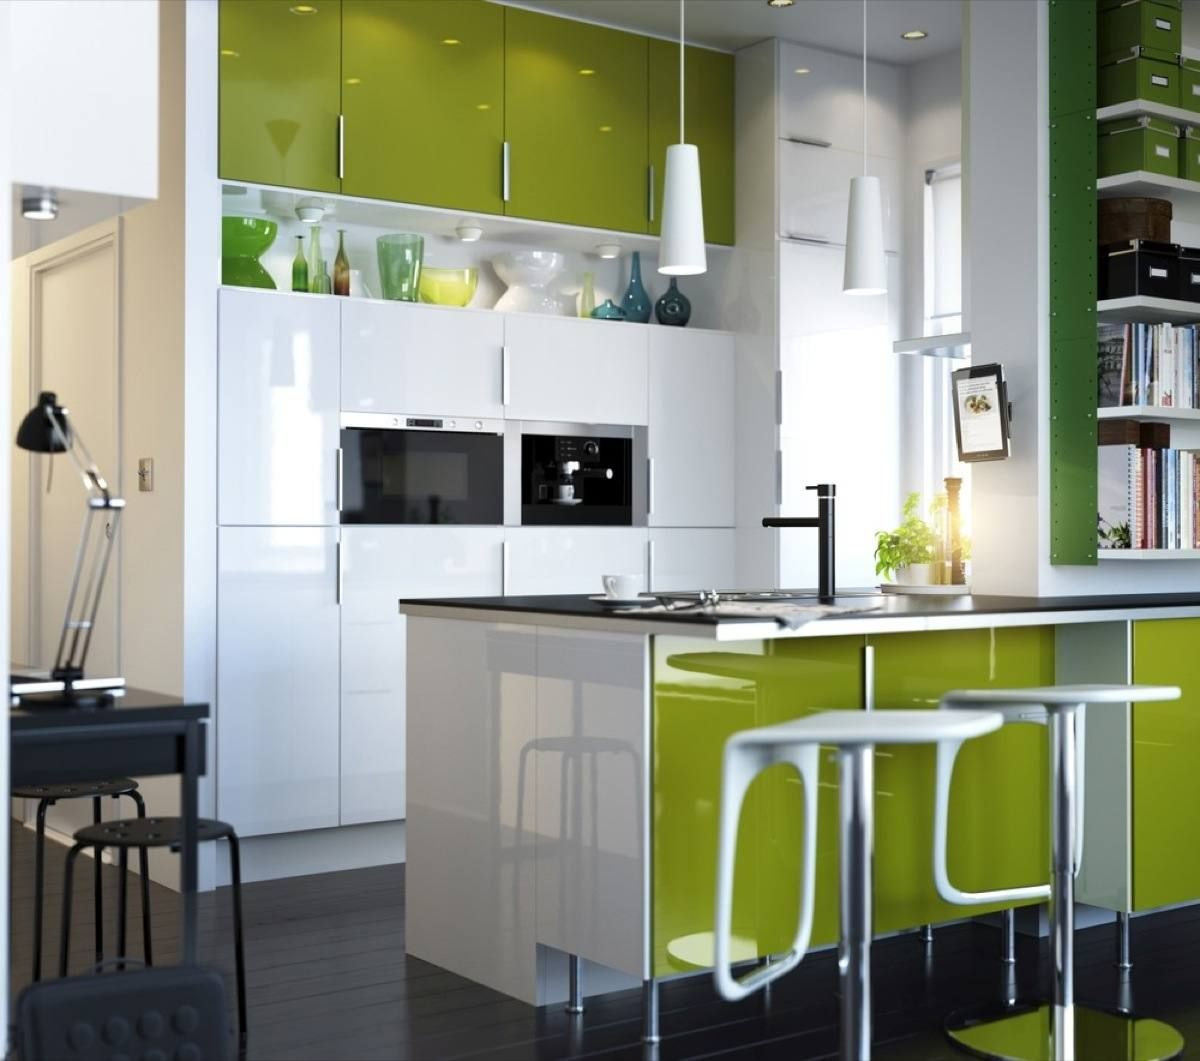 lime green ikea kitchen design 2012 cuisine pinterest ikea